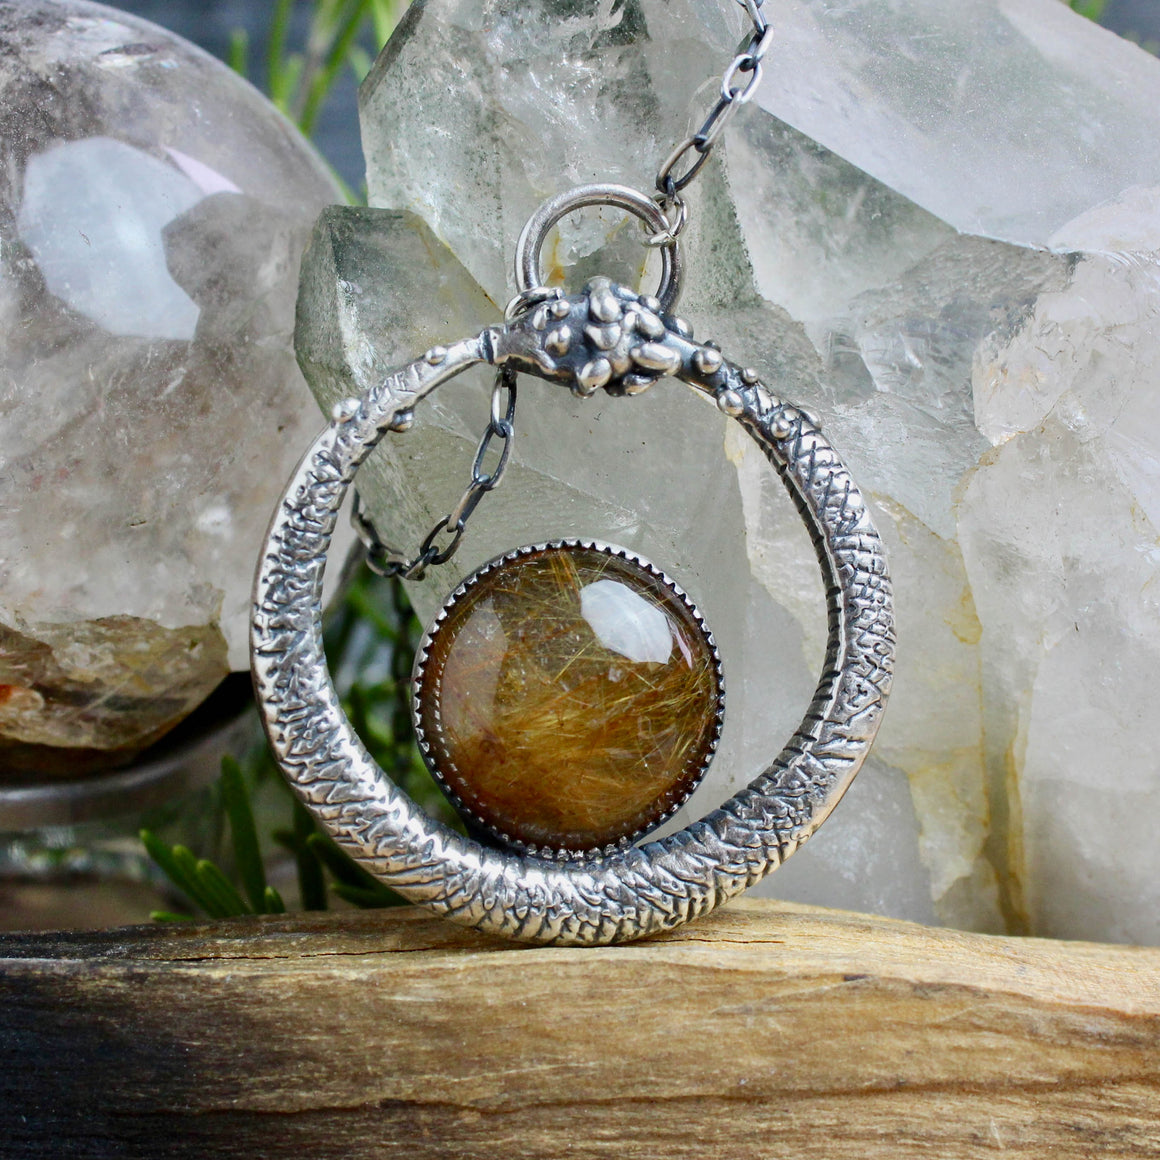 Serpent Queen Pendant // Rutilated Quartz - acid-queen-jewelry, All Products - acid-queen-jewelry, vendor-unknown - acid-queen-jewelry,  Acid Queen Jewelry - acid-queen-jewelry